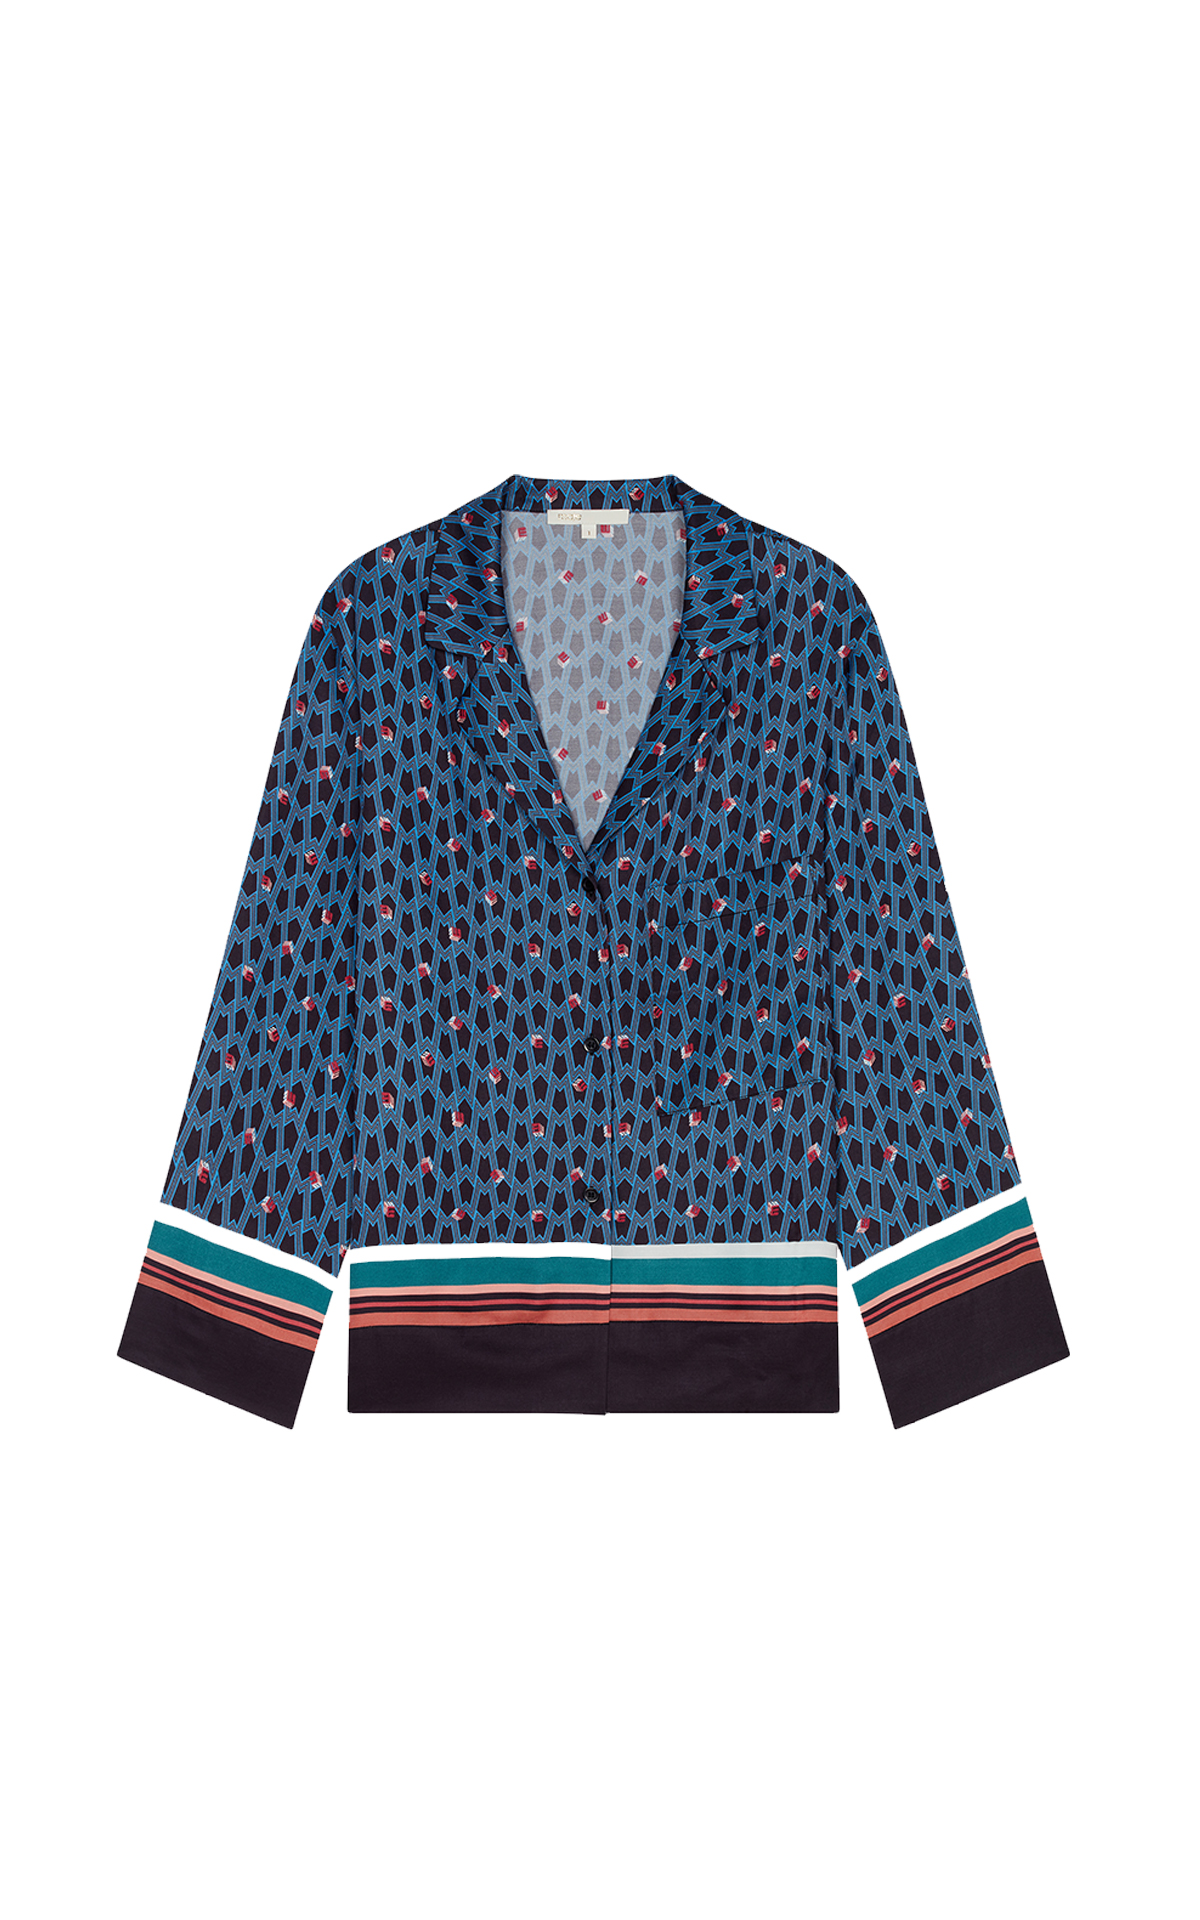 Maje Pajama style shirt at The Bicester Village Shopping Collection